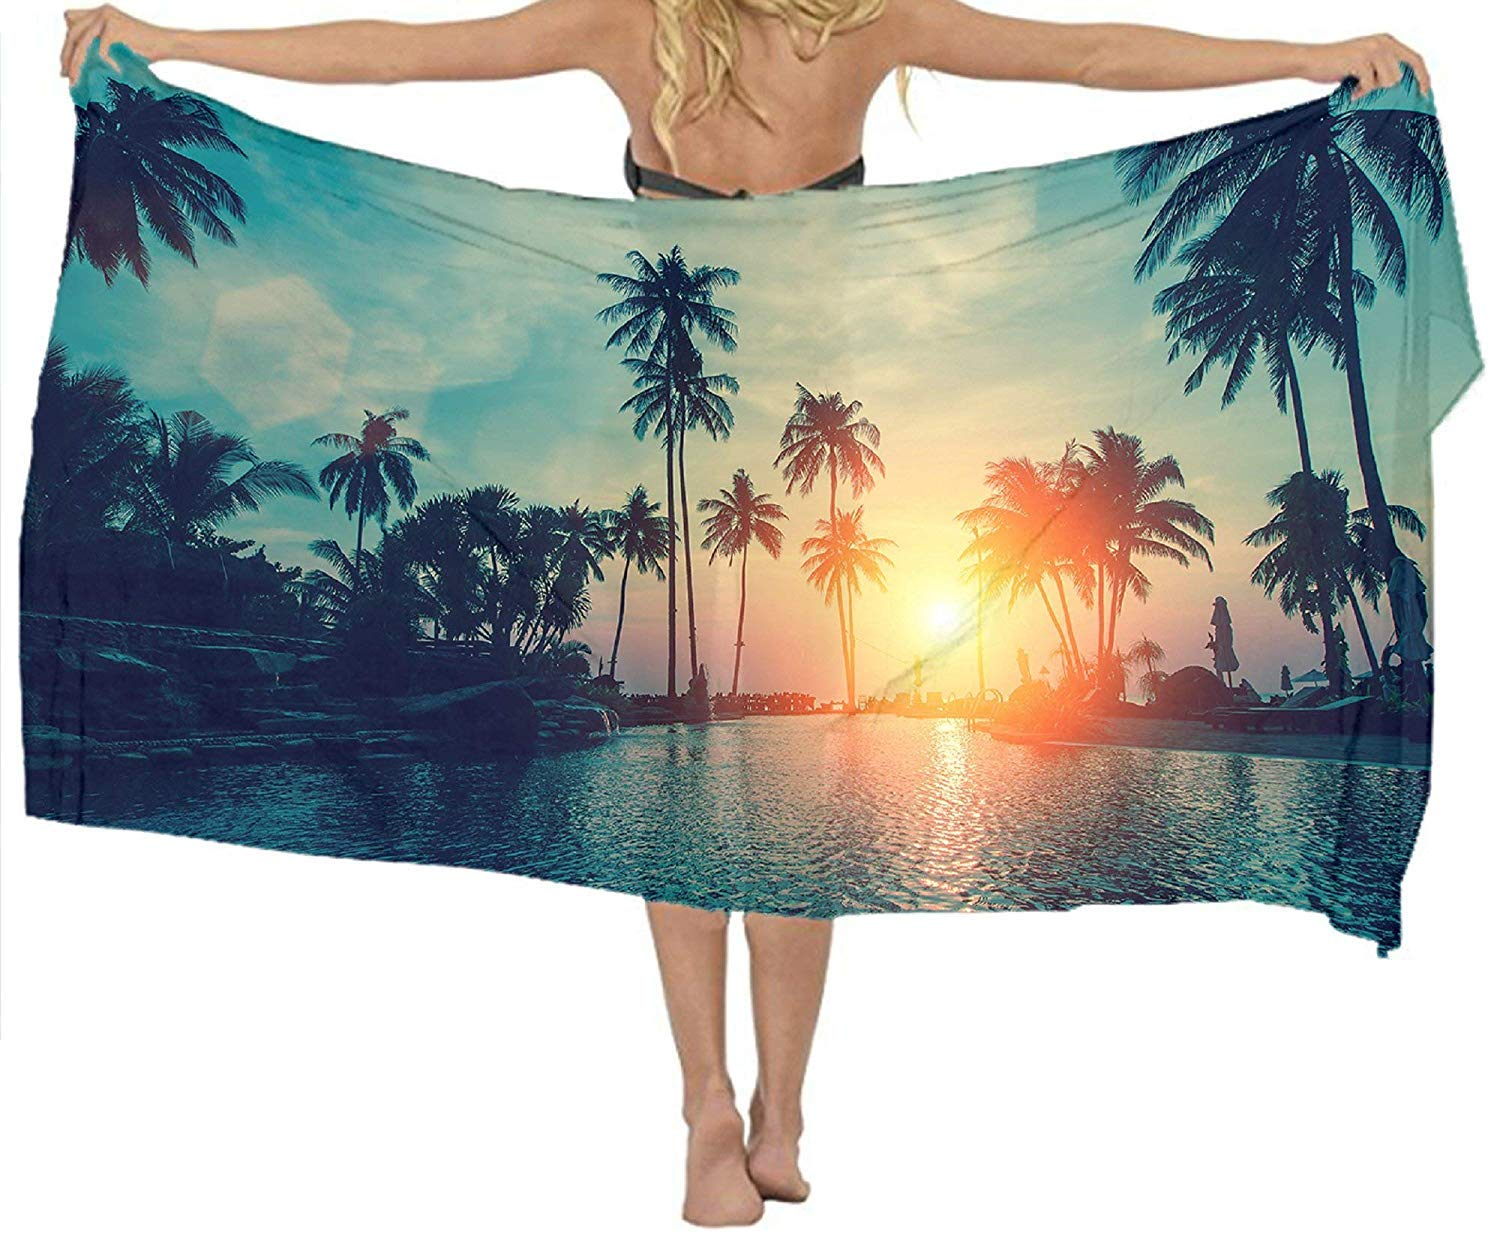 Yamenny Classic CuteSunset Palm Trees Tropical Beach Shawl and Comfort Wrap for Women&Girl,Non-Toxic Decor